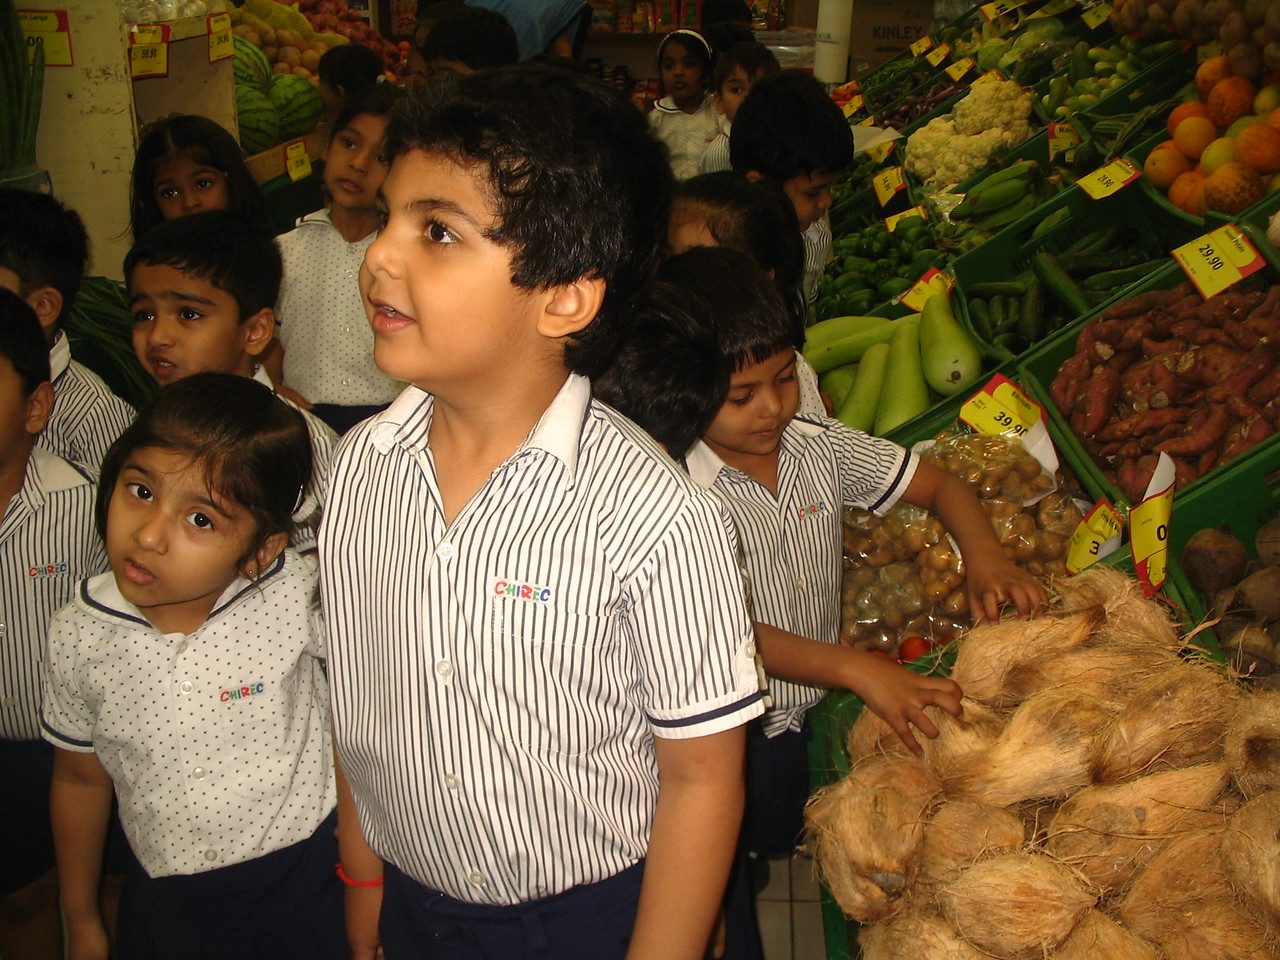 VISIT TO THE VEGETABLE MARKET FOR THE TOPIC VEGGIE DELIGHT 1